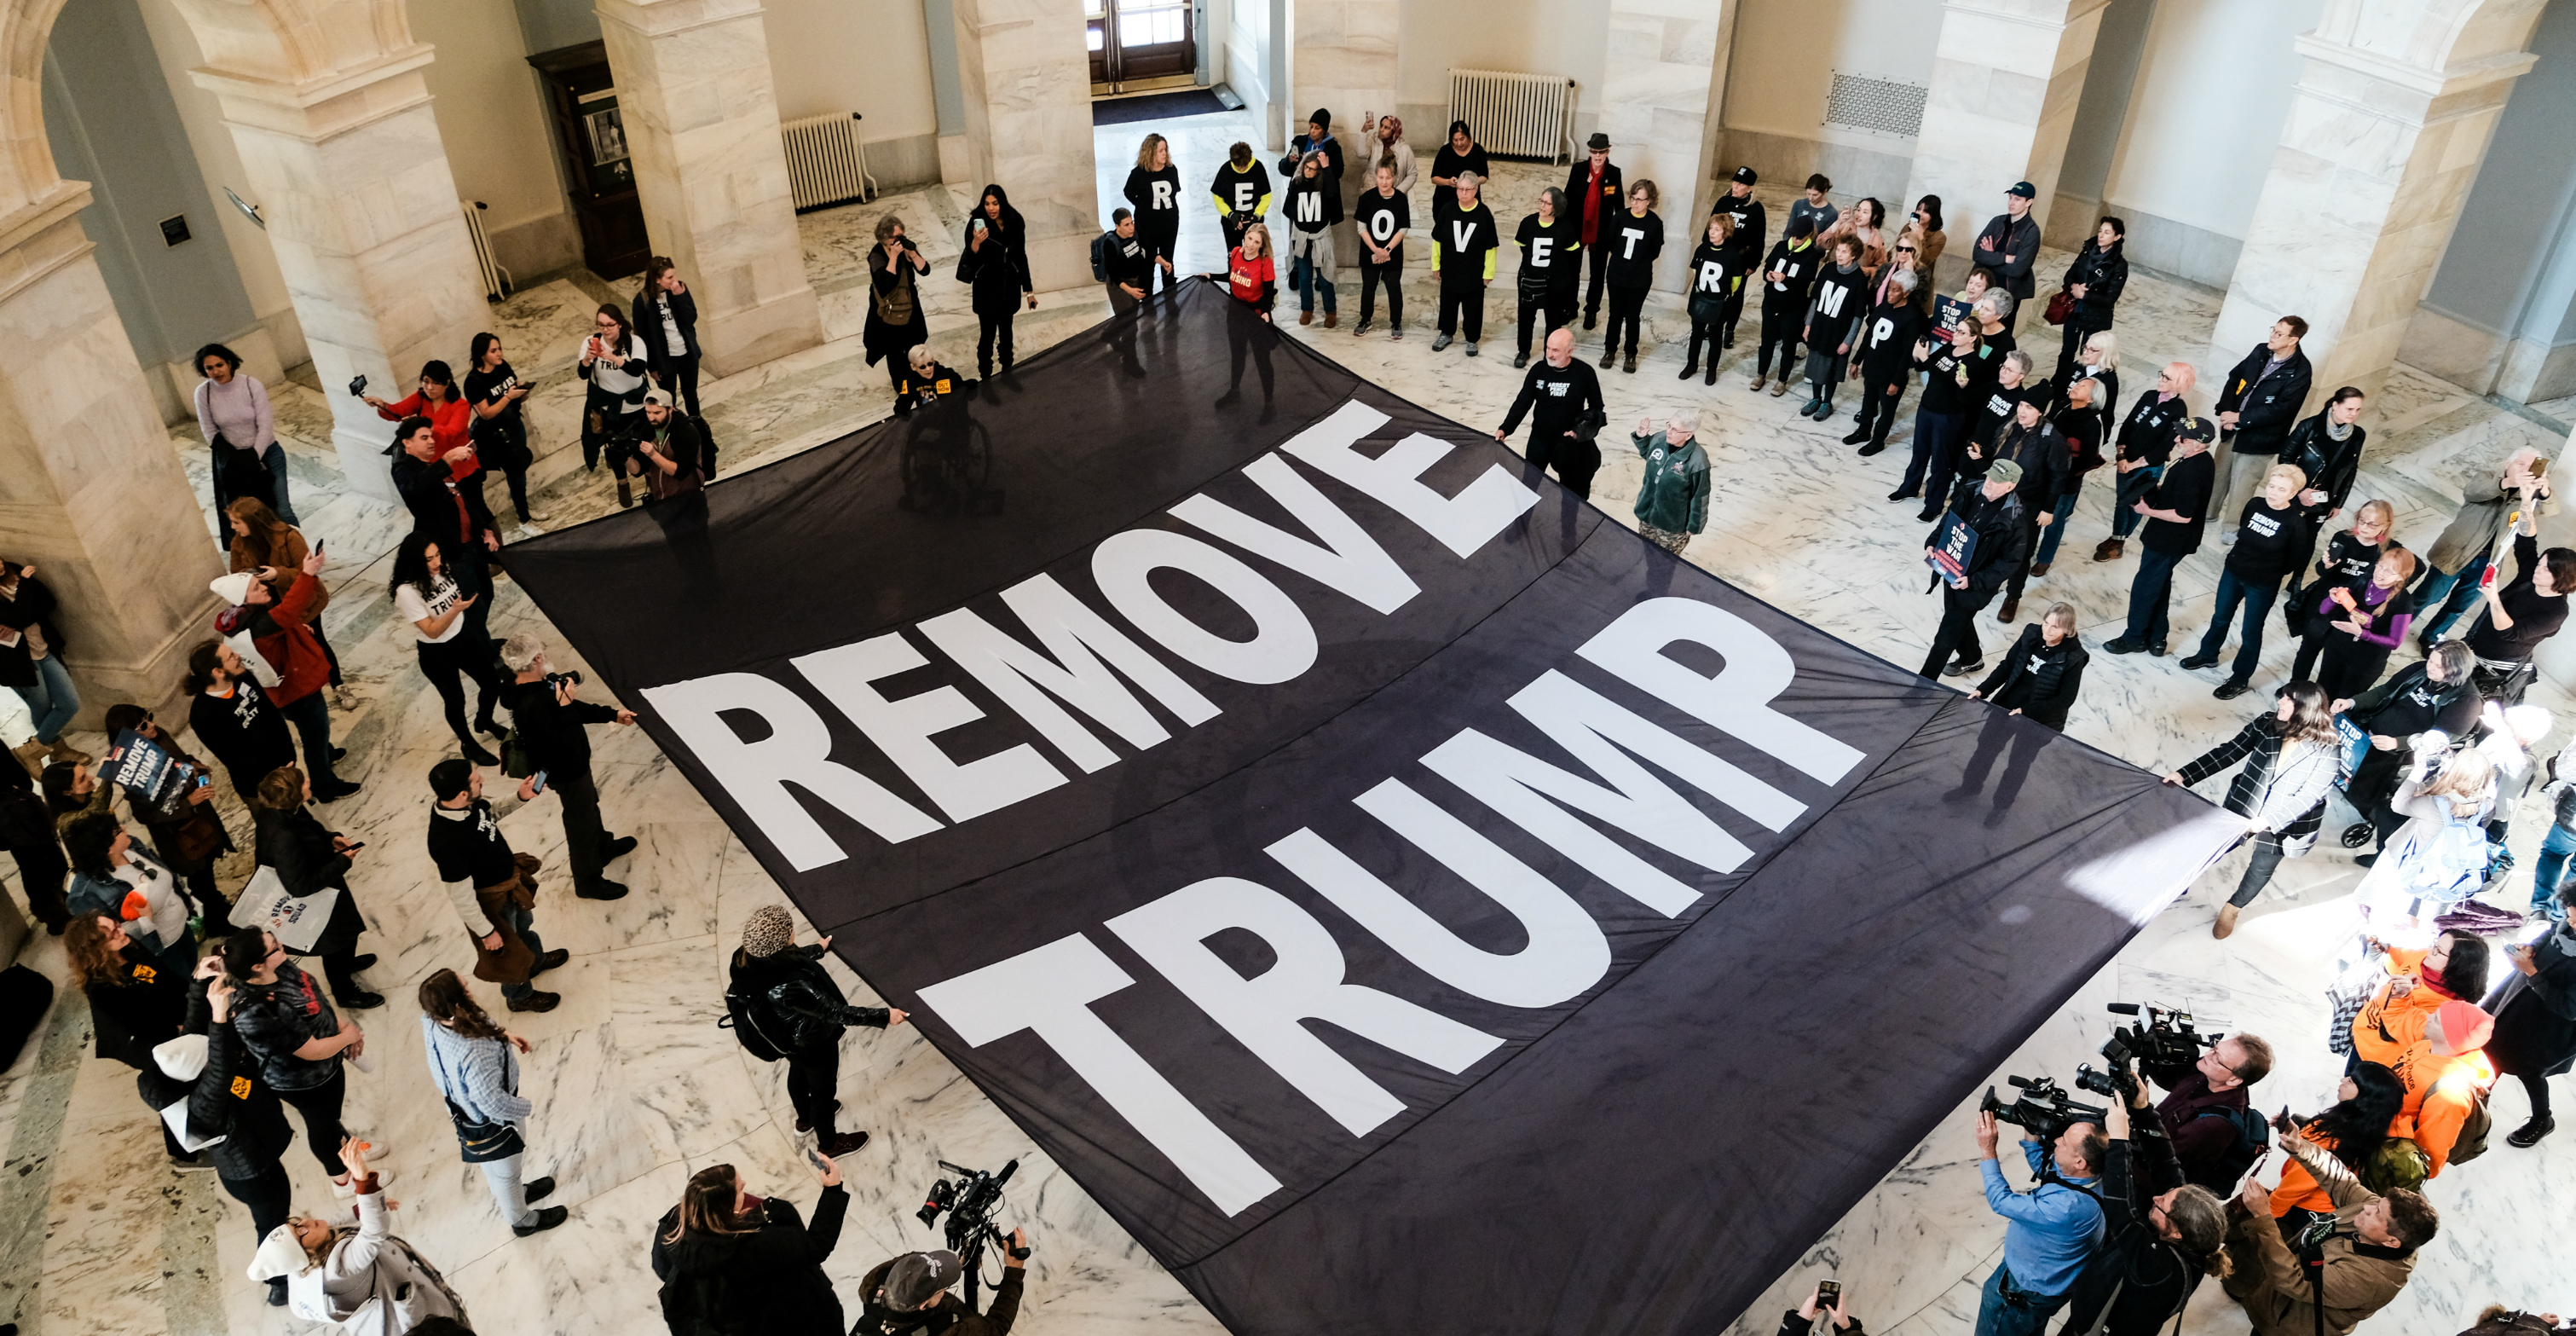 Activists spread out a banner calling for the removal of US President Donald Trump on the floor of the Russell Senate Office Building during a demonstration on Capitol Hill in Washington on Thursday. Photo: Reuters